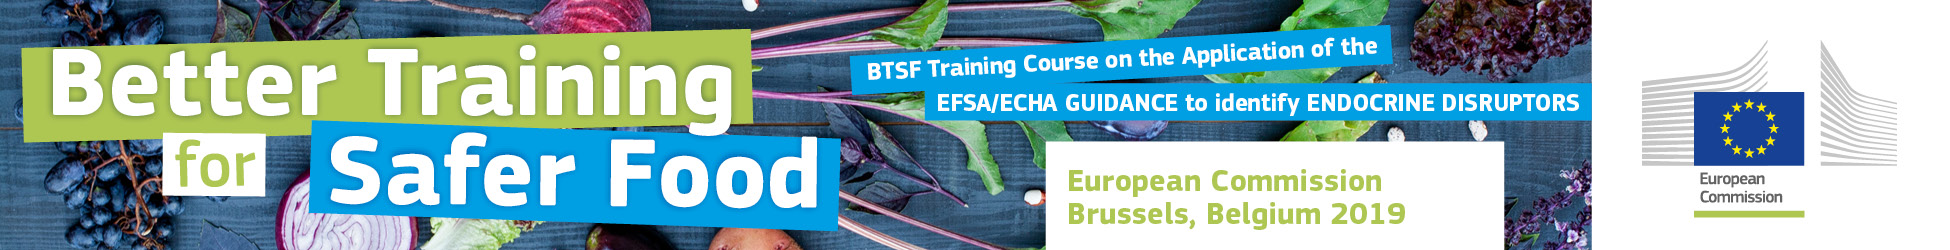 "BTSF Training Course on the Application of the ""EFSA/ECHA GUIDANCE to identify ENDOCRINE DISRUPTORS"""